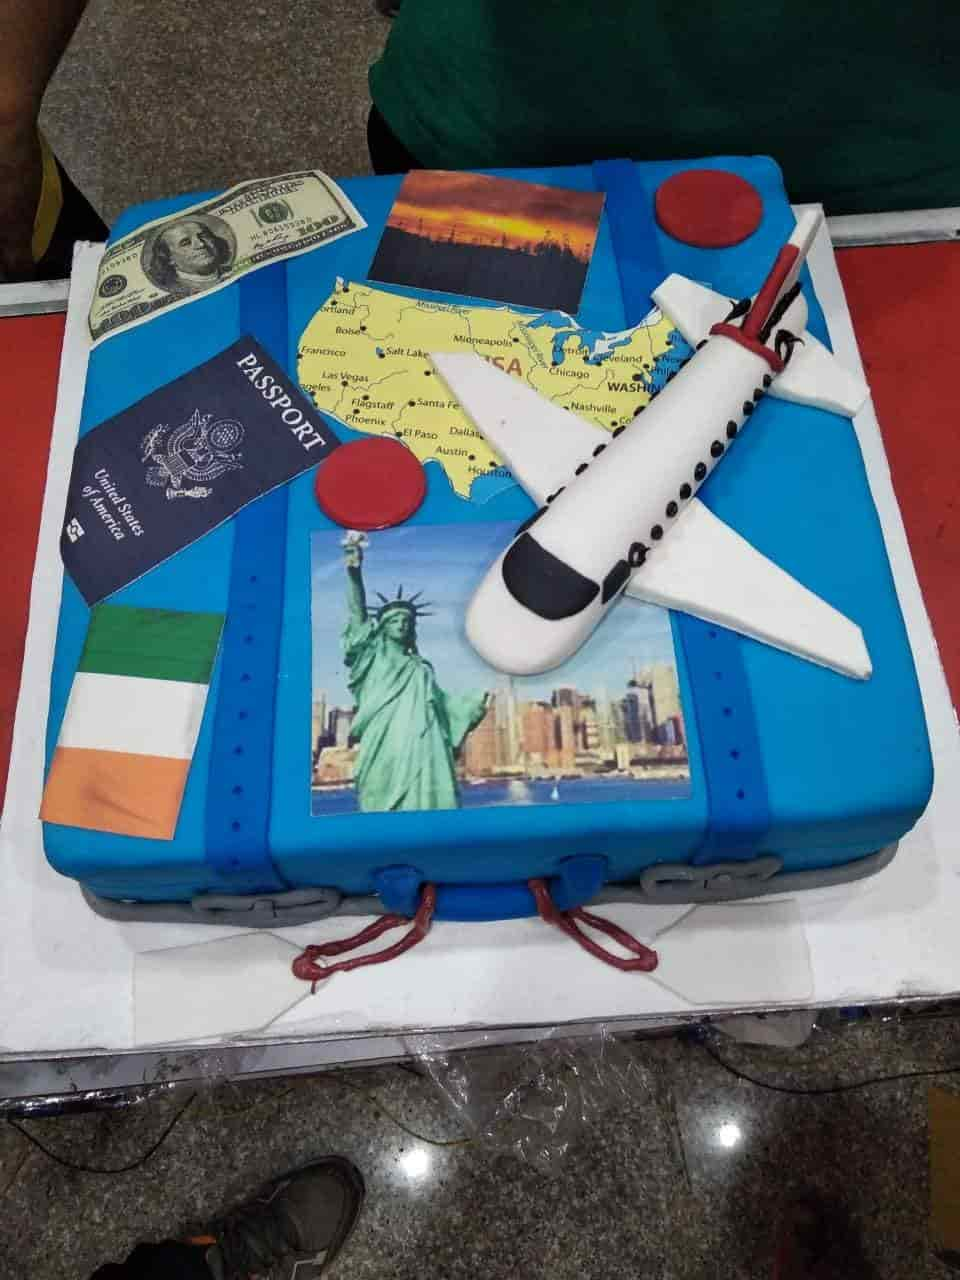 Cake Inventor Dlf City Phase 4 Midnight Cake Delivery Services In